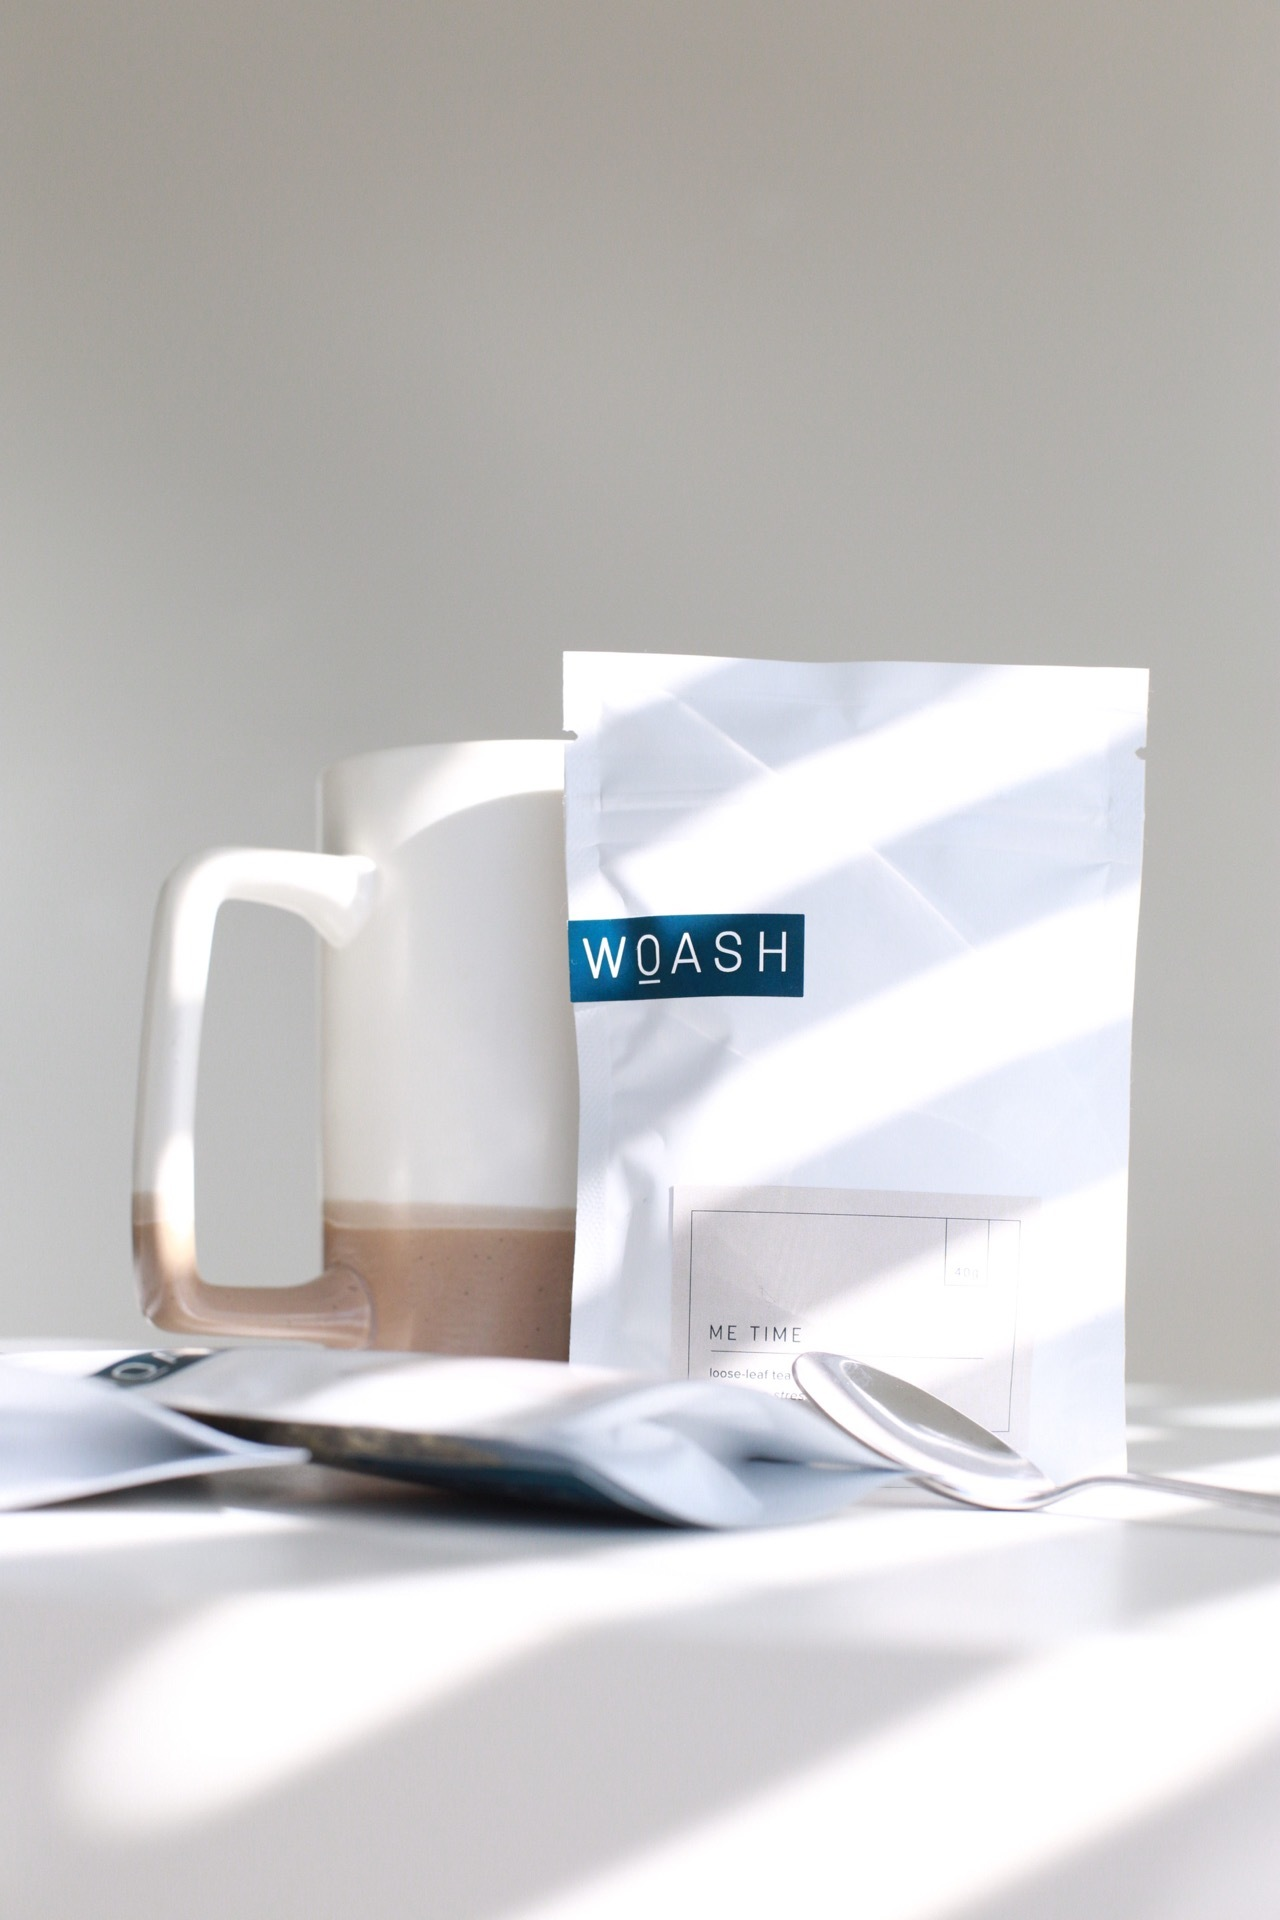 Woash Wellness packaging shown with a spoon and a mug